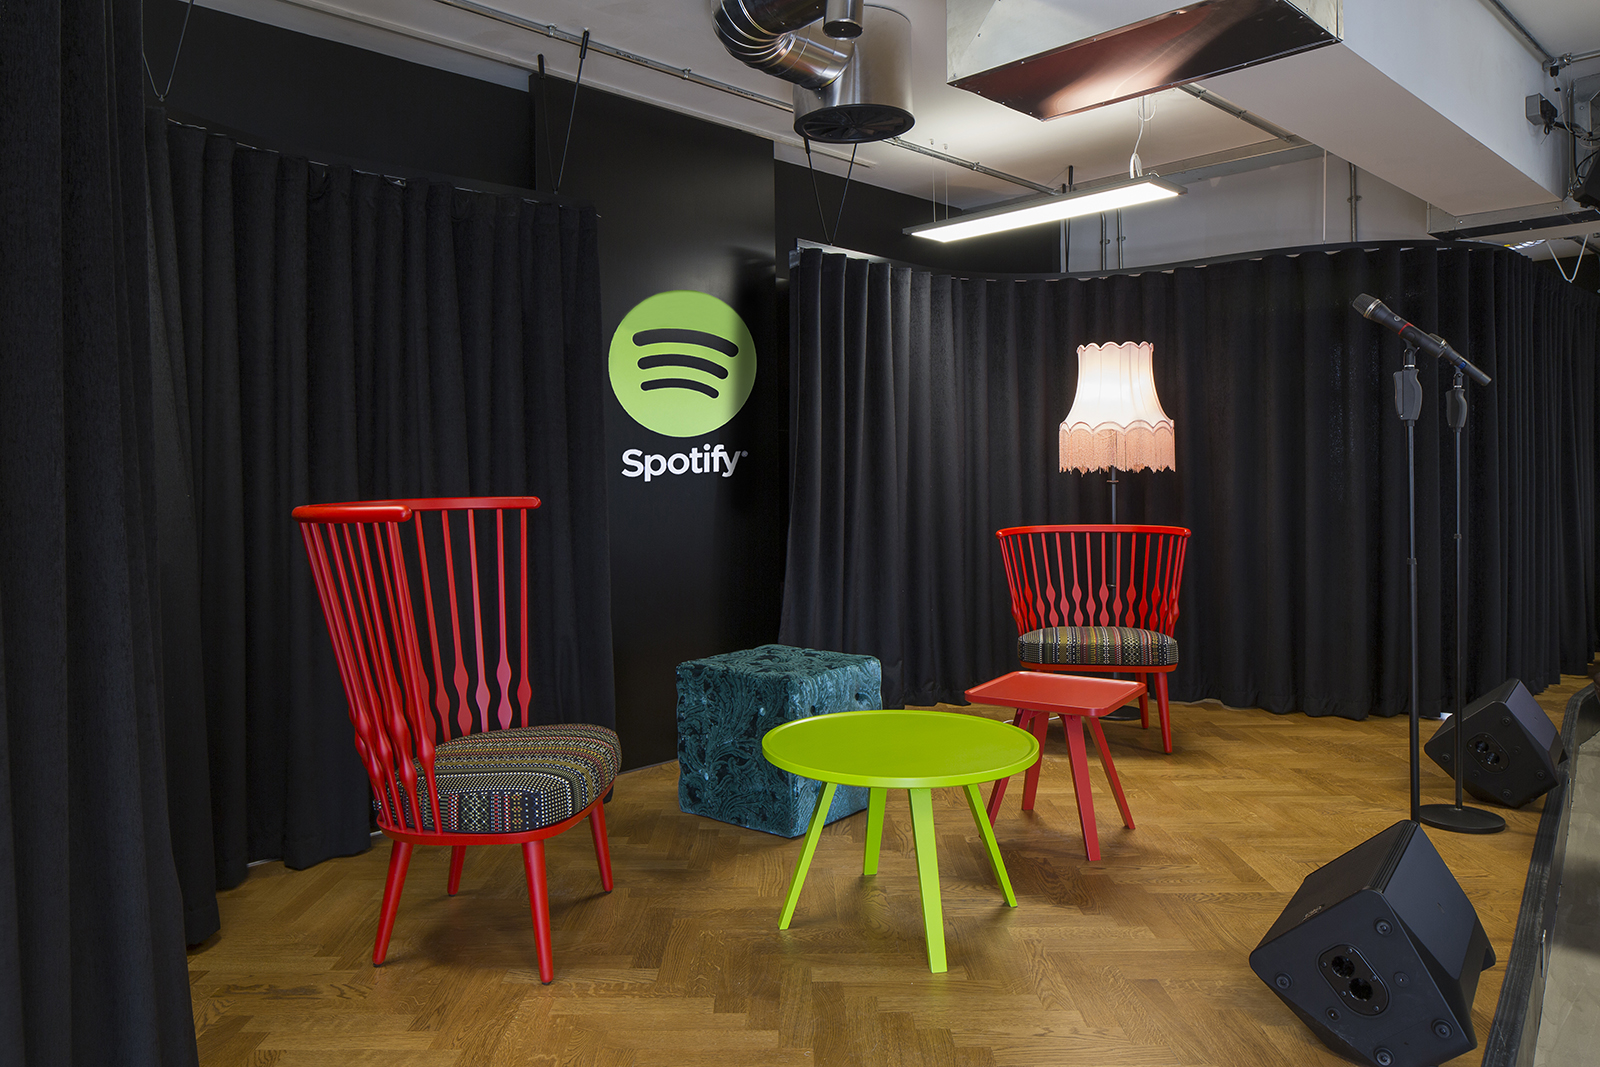 spotify-london-office-1